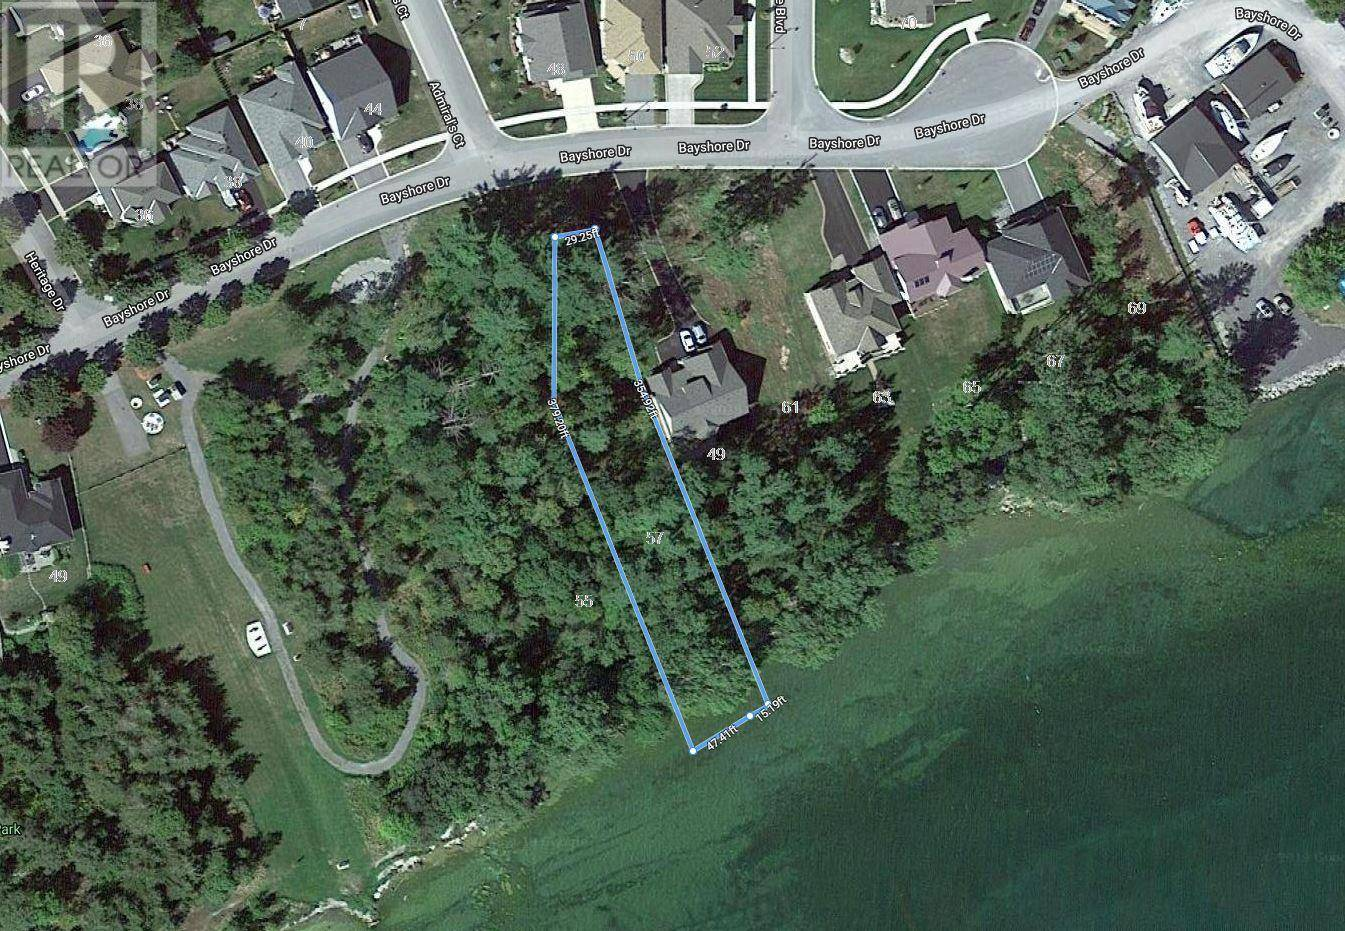 Home for sale at 57 Bayshore Rd Bath Ontario - MLS: K20001225a